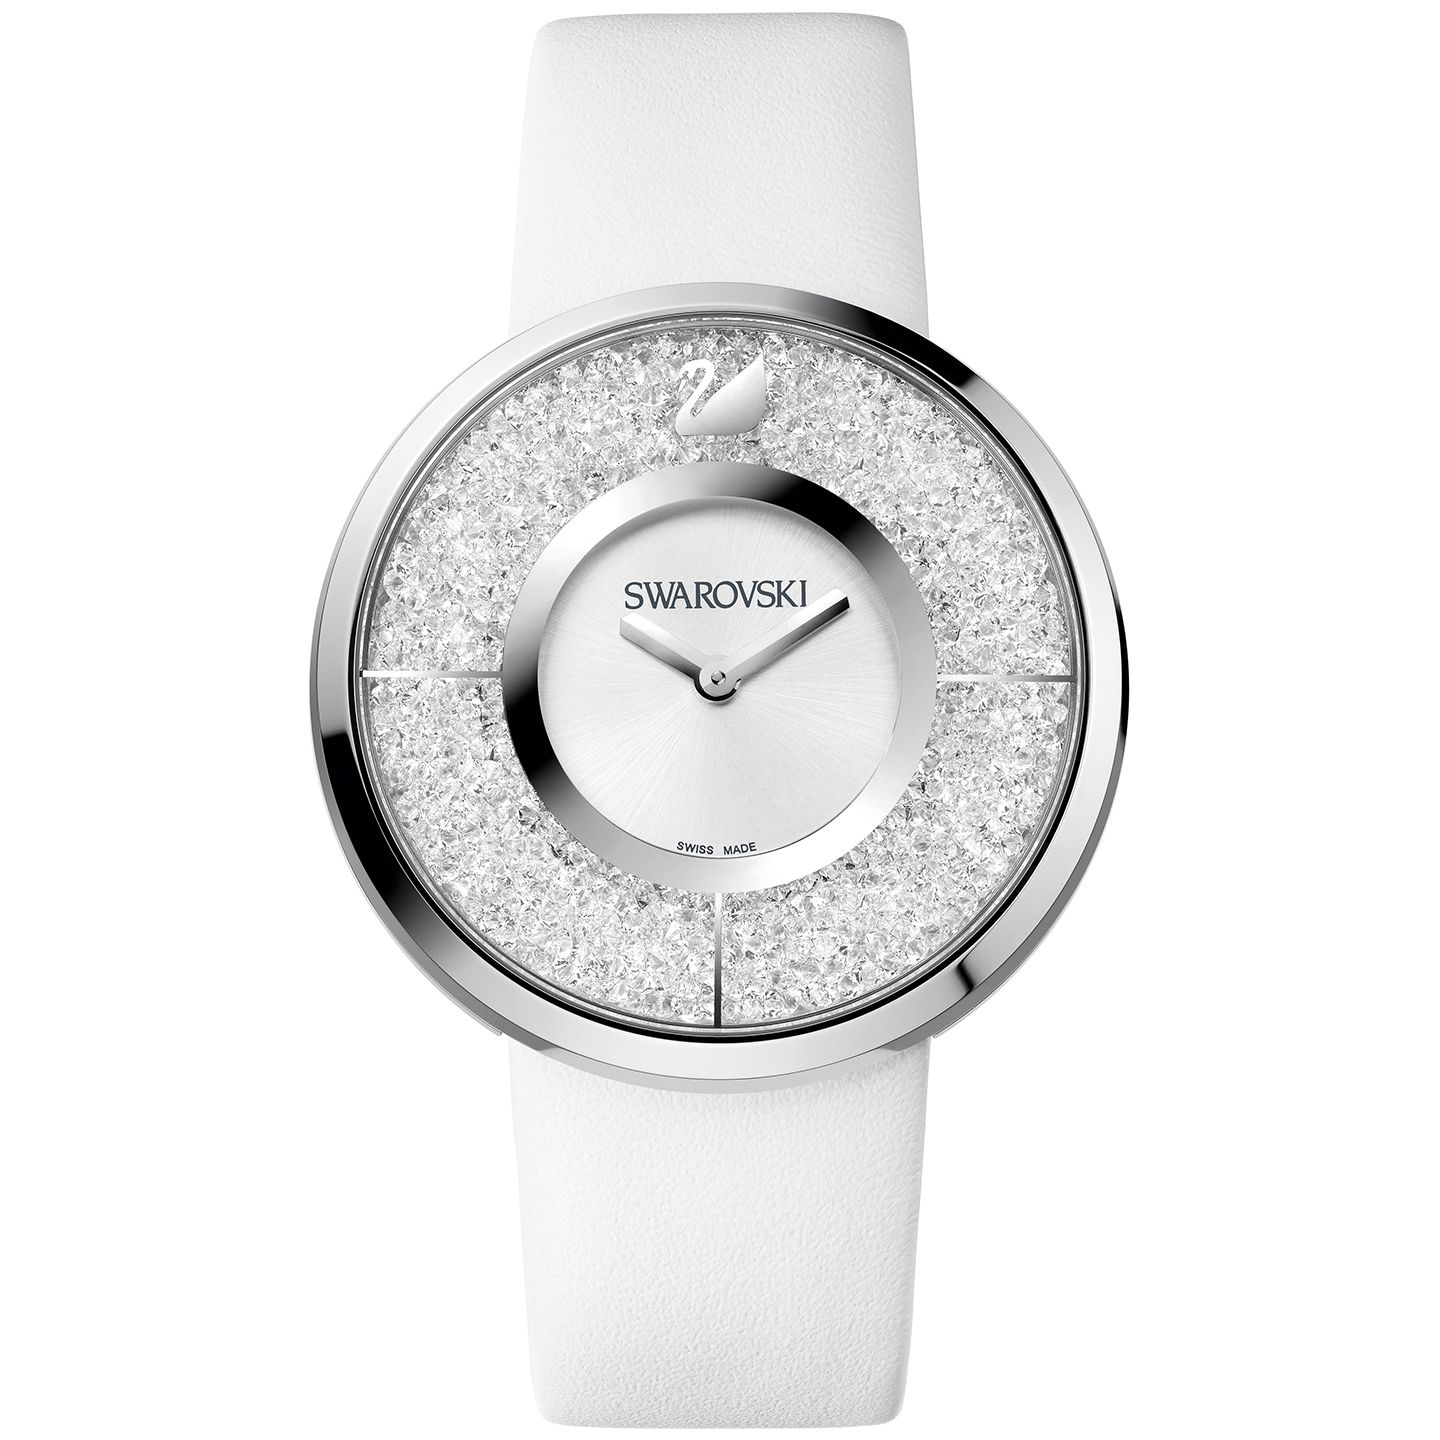 Crystalline watch